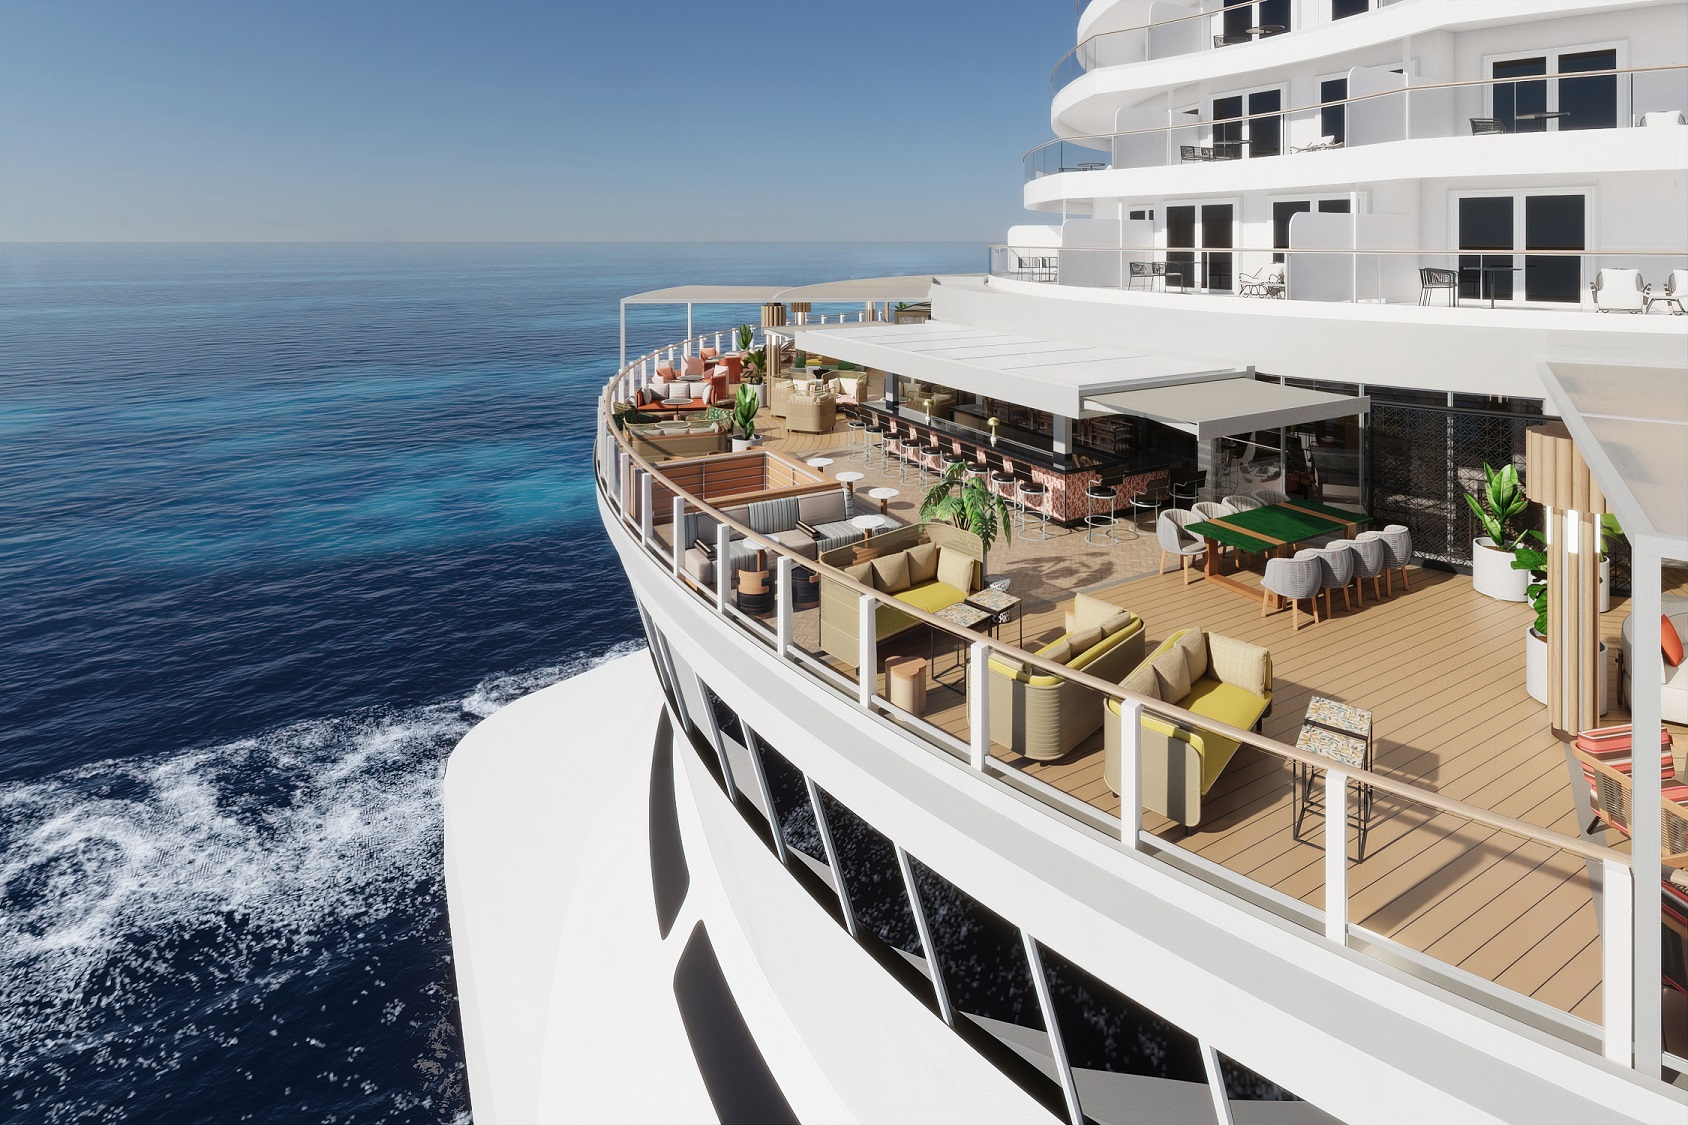 Upscale outdoor dining experiences with Norwegian Cruise Line's Indulge Food Hall on Norwegian Prima – the Brand's first-ever upscale open-air marketplace.